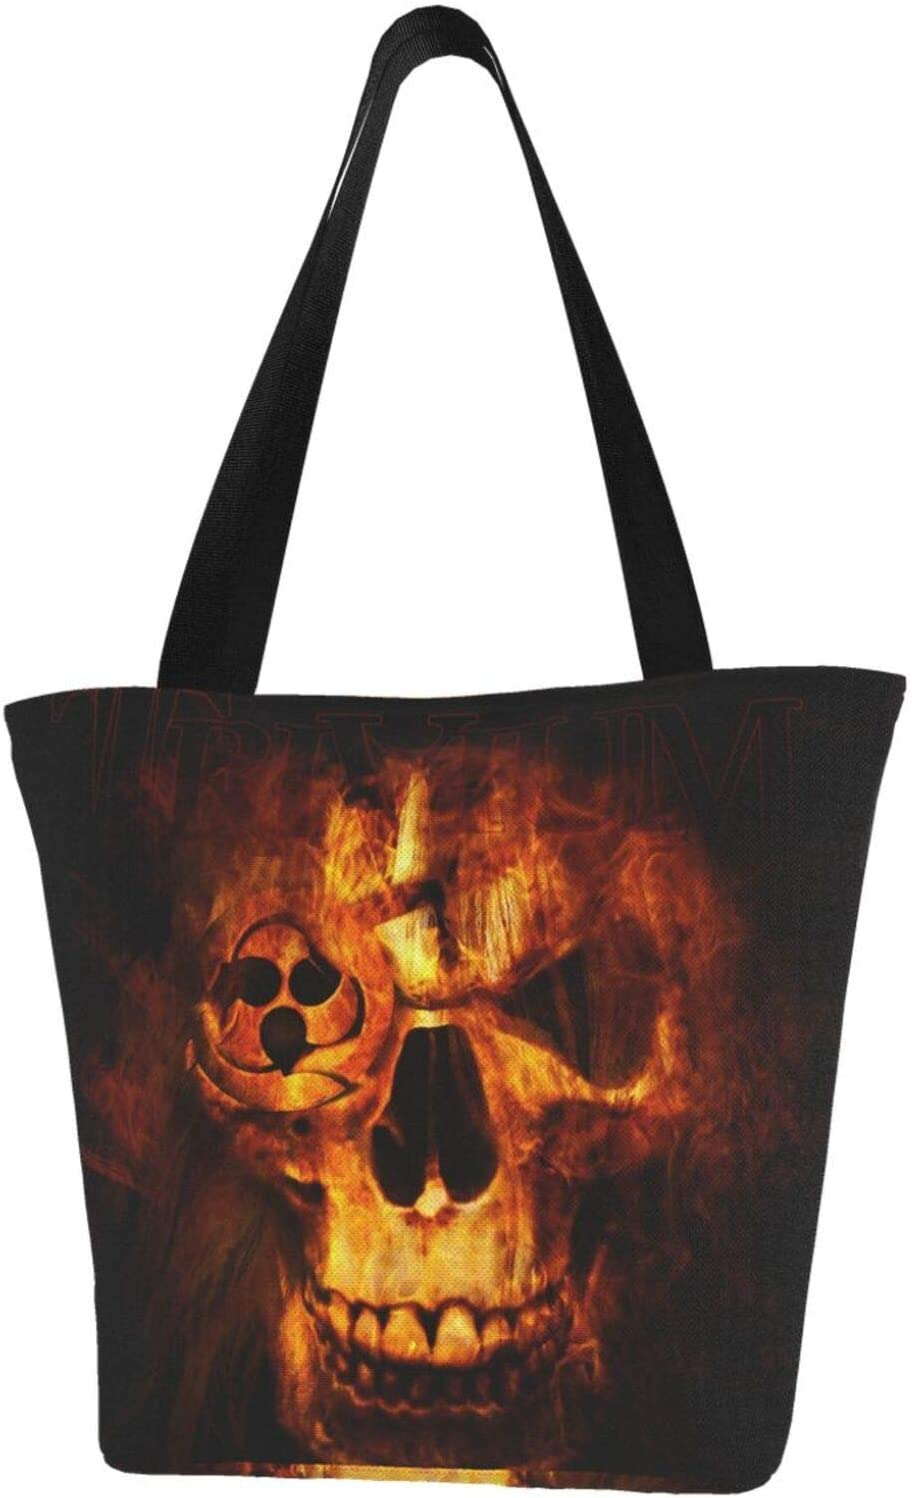 AKLID Cool Skull Extra Limited Special Price Large Water Tote Inventory cleanup selling sale Bag for Canvas Resistant